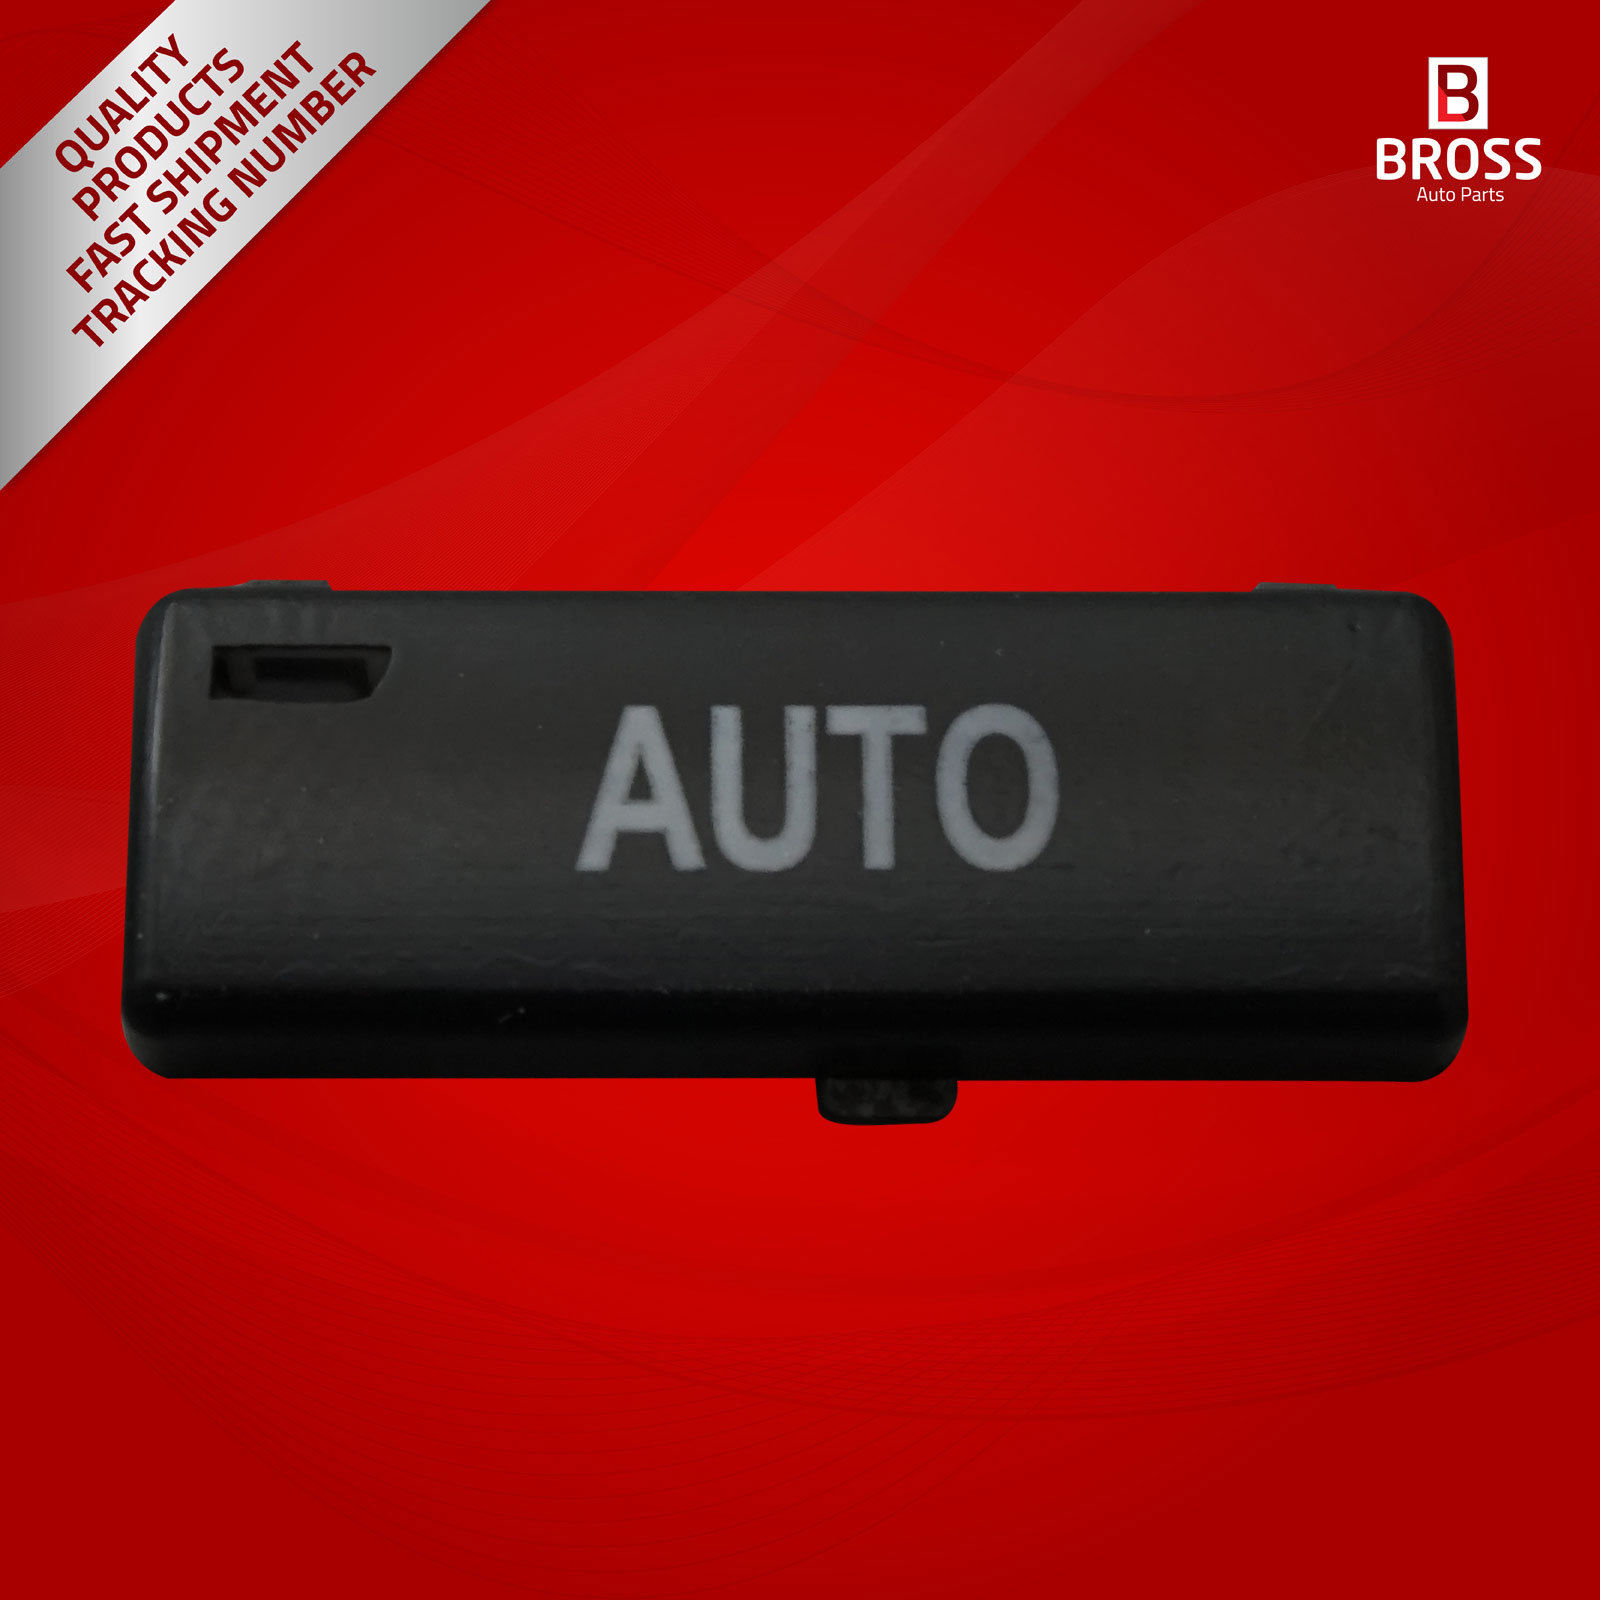 BDP88-4 1 Stuk Heater Climate Control Airconditioning Switch Knop Cover #4 Voor 5 Serie X5 E53 2000- 2007 E39 1995-2003